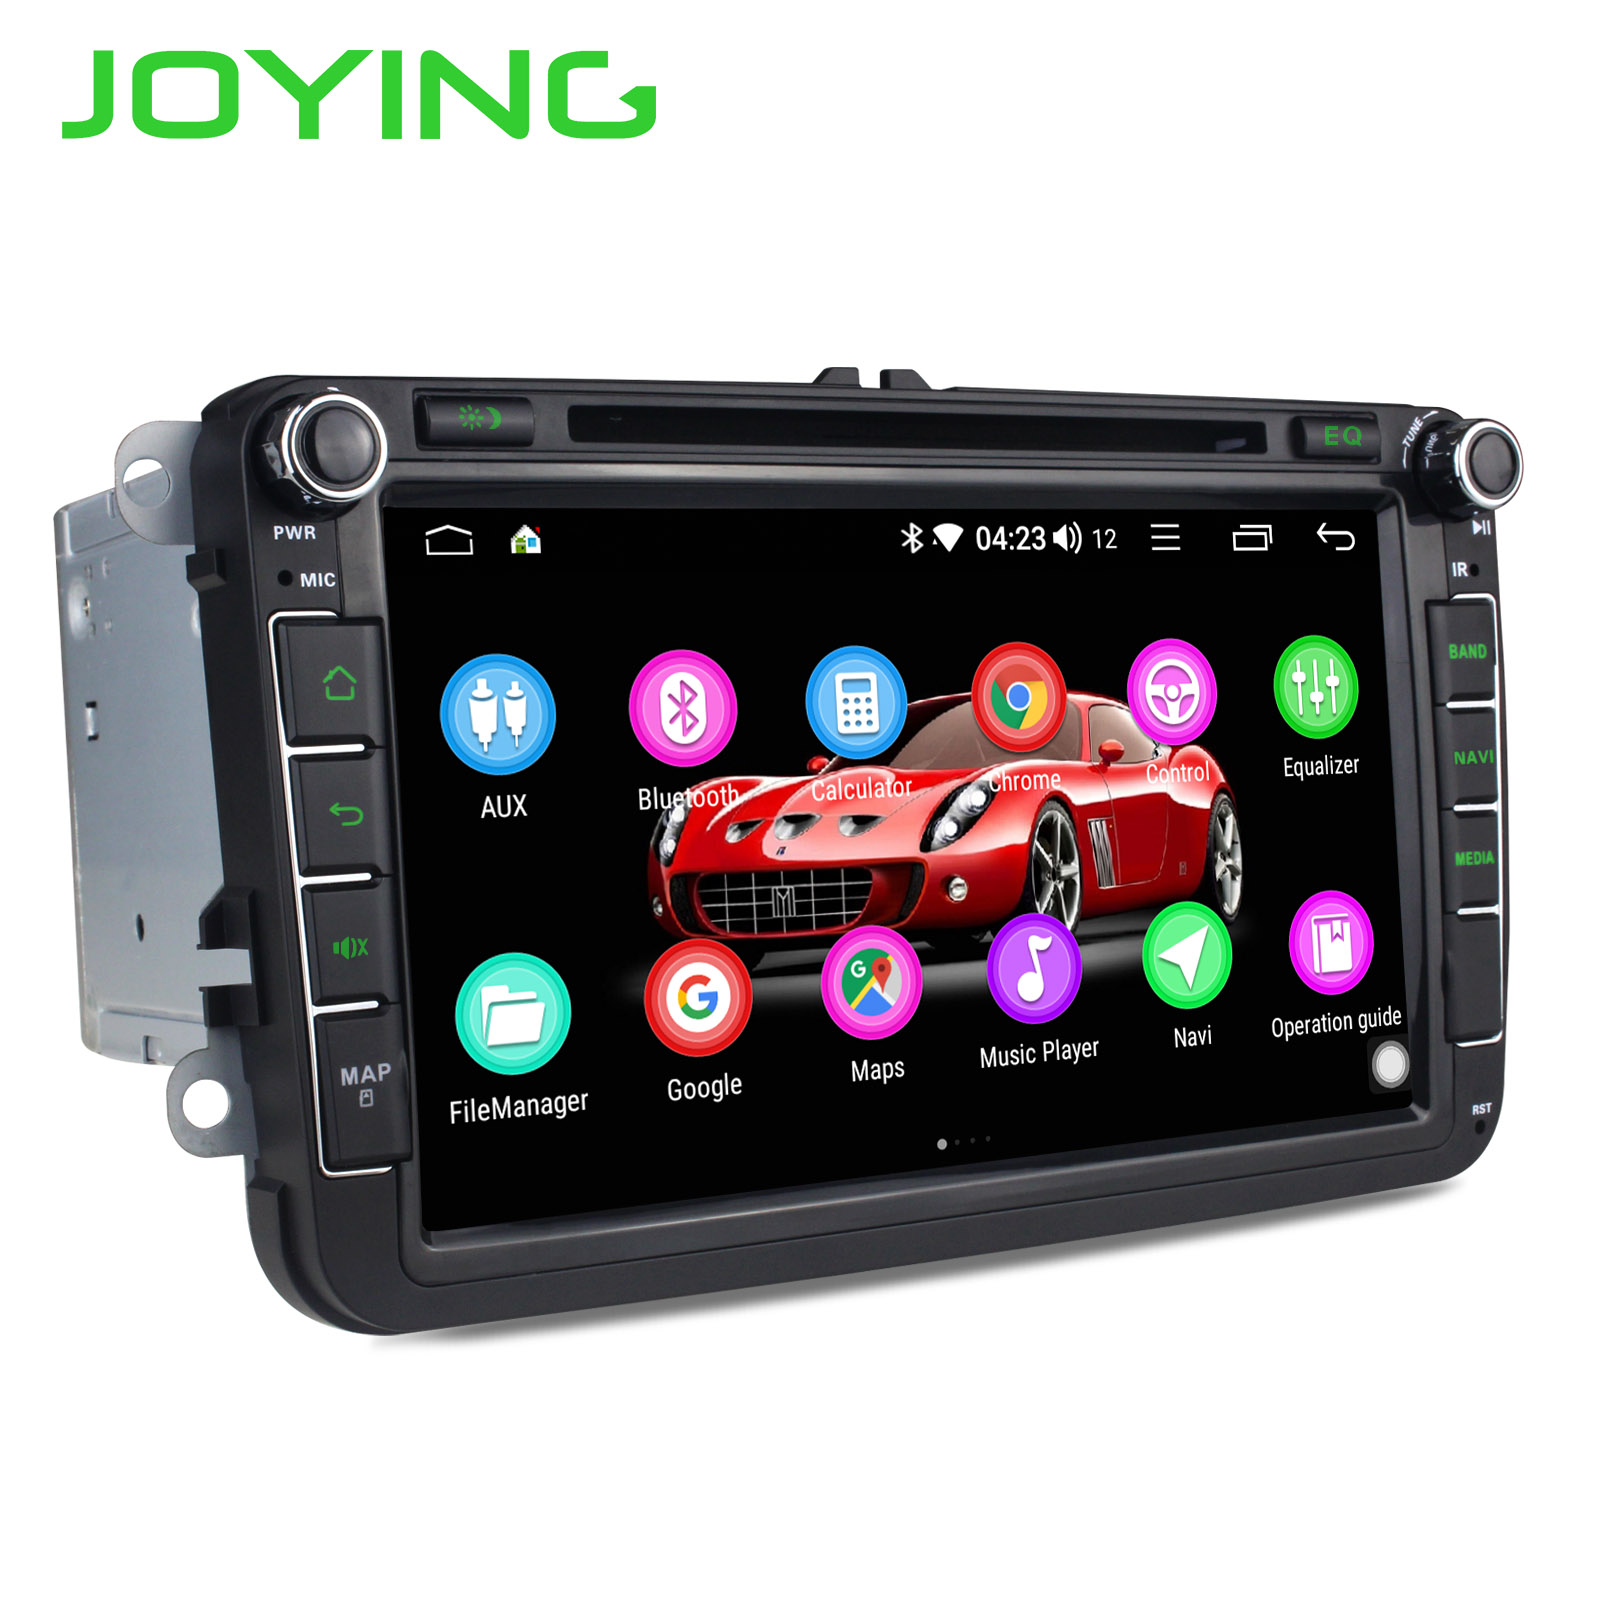 Android 9 0 Car DVD player For Toyota Yaris 2012 2013 2014 2015 2016 2017 2018